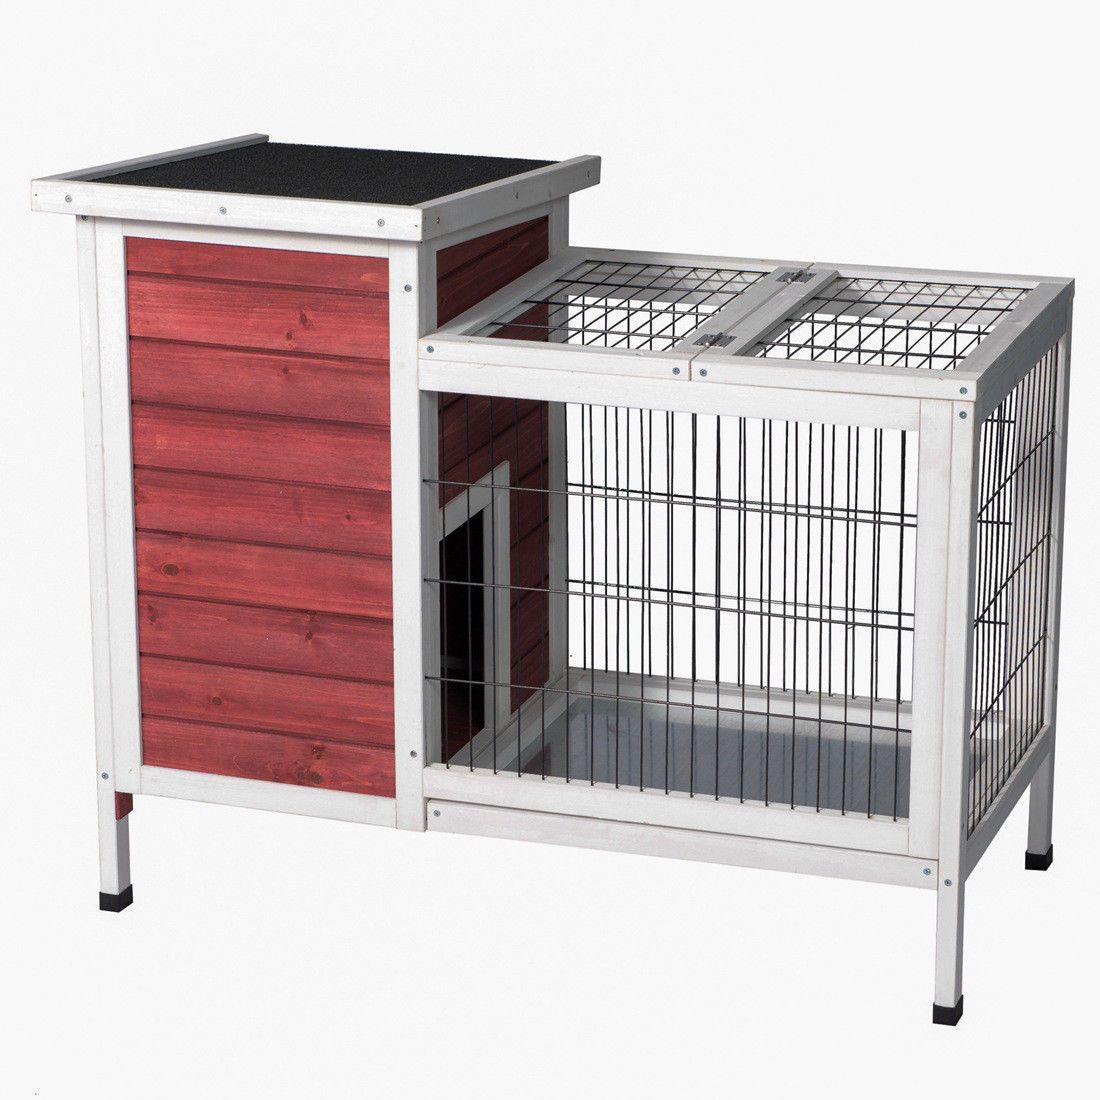 Product Image Wooden Outdoor Indoor Bunny Hutch Rabbit Cage Coop PET House  Red U0026 White